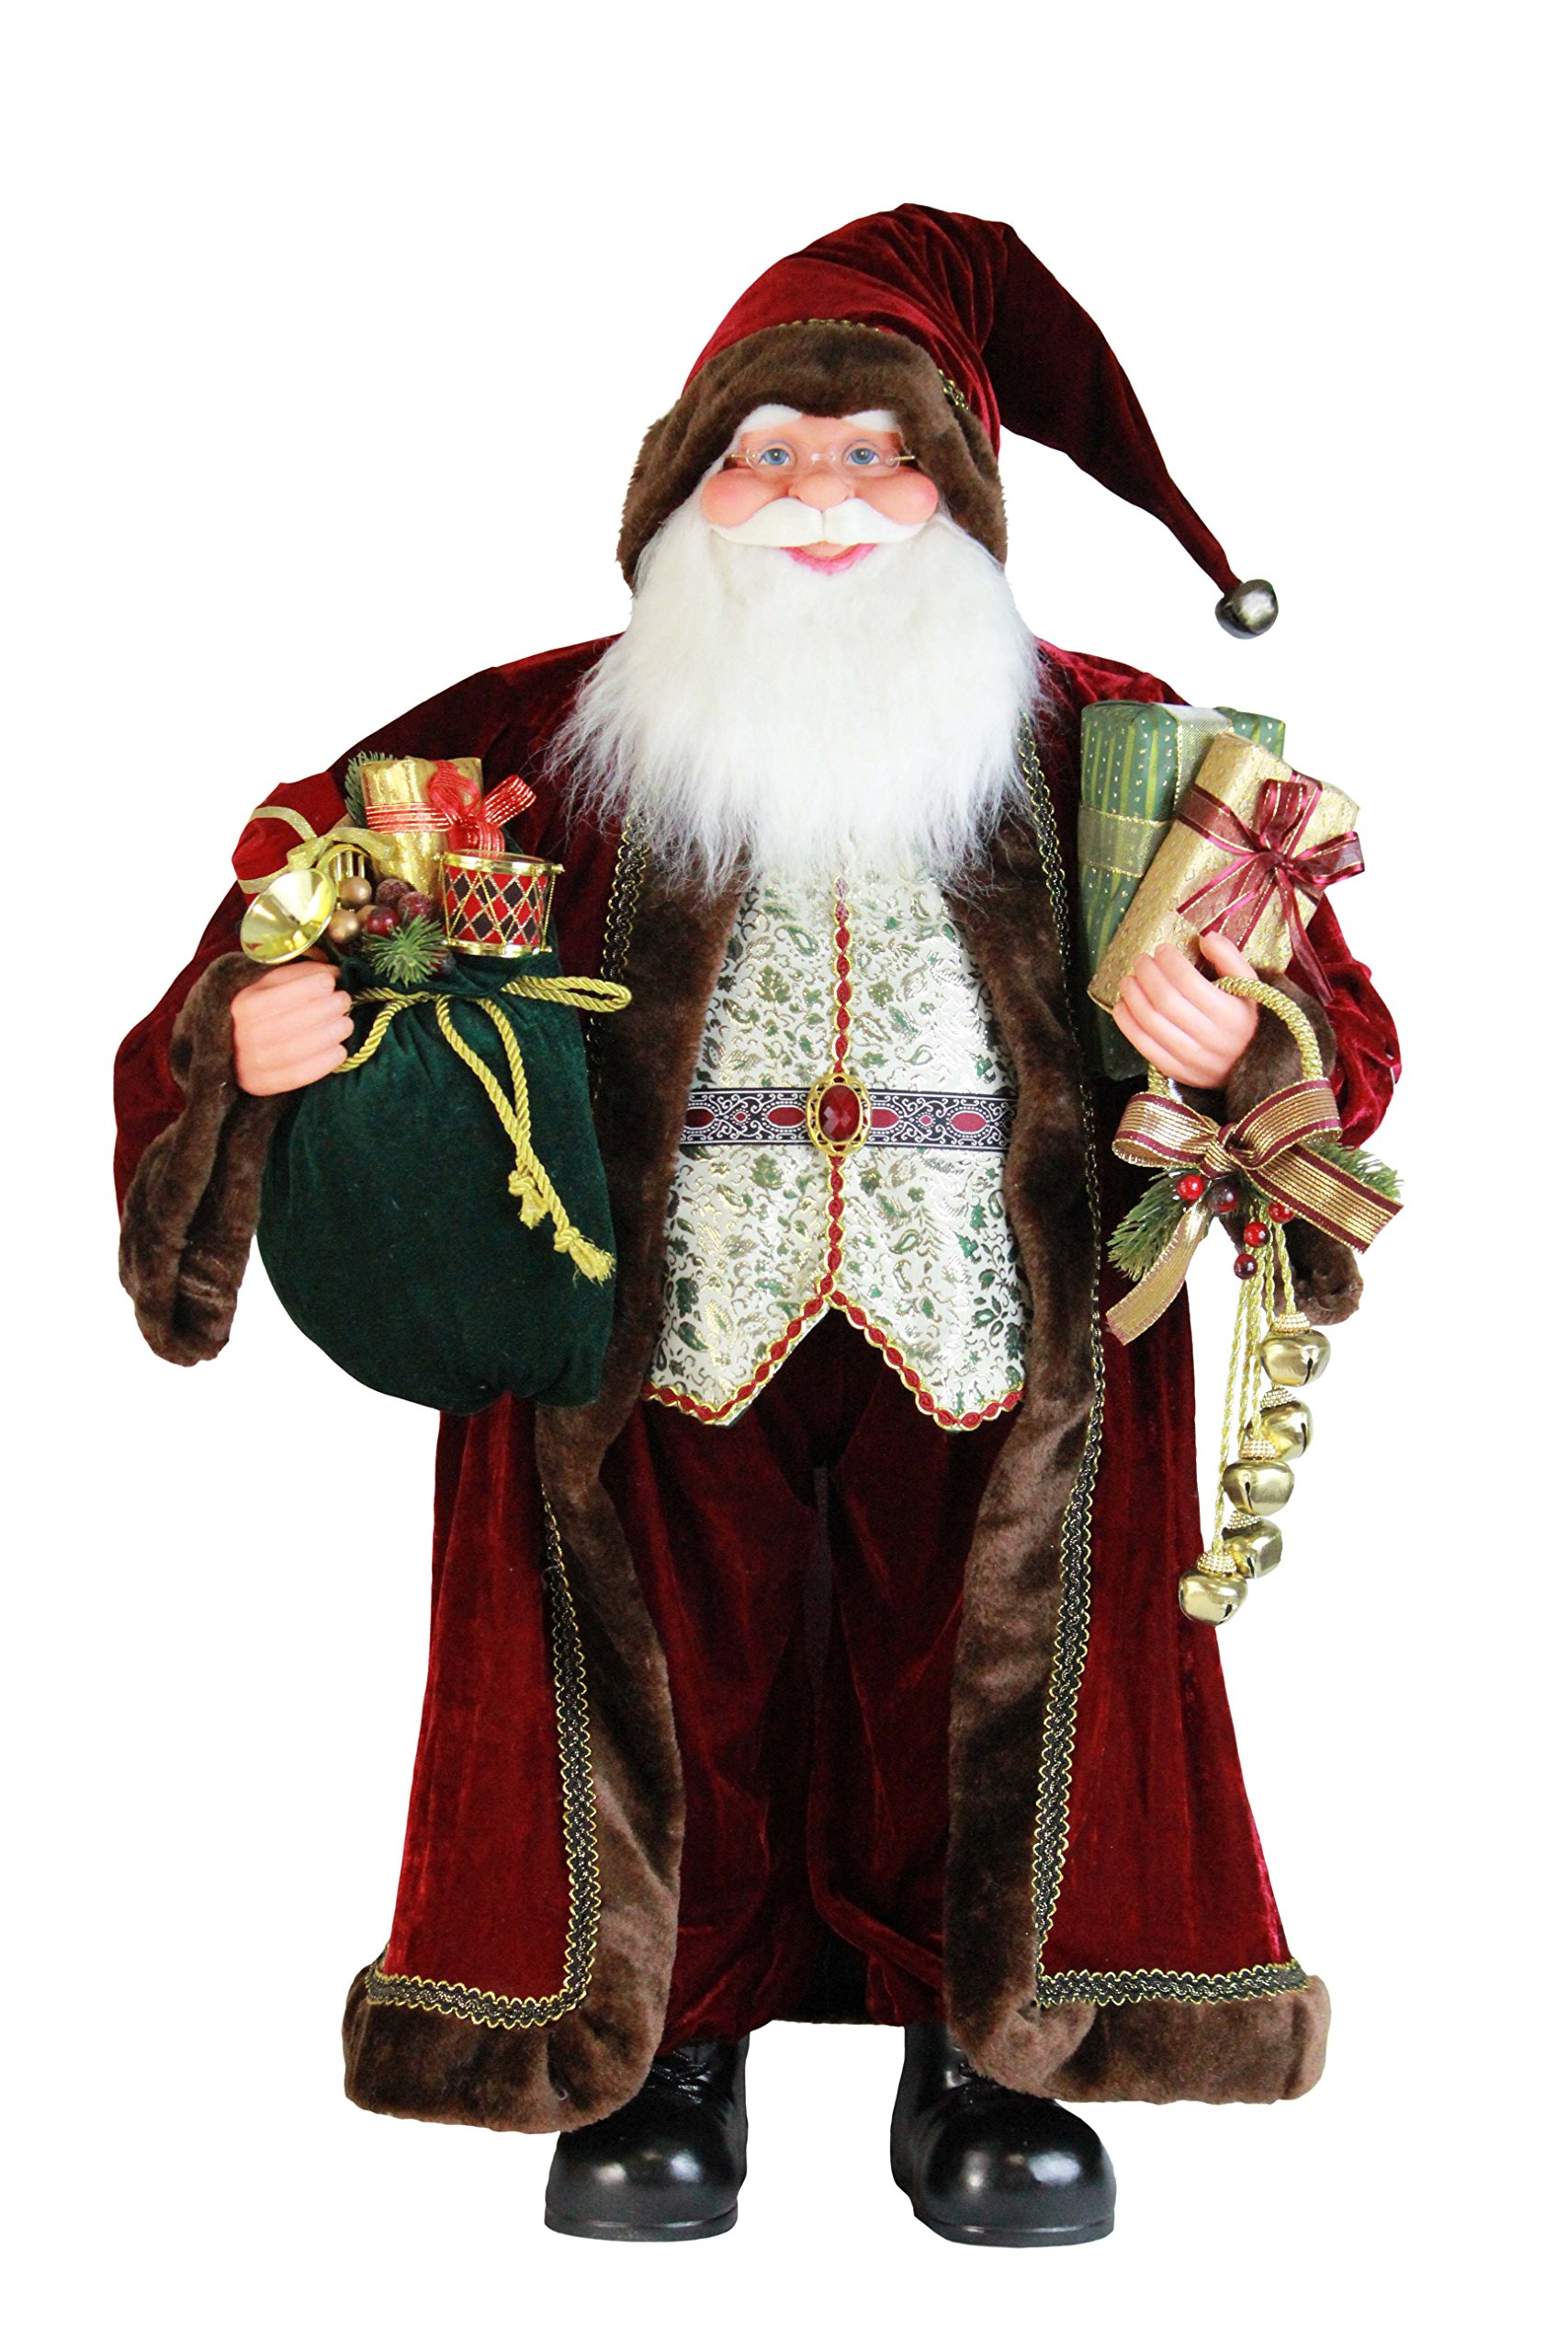 36'' Inch Standing Sensational Santa Claus Christmas Figurine Figure Decoration 36713 by Windy Hill Collection